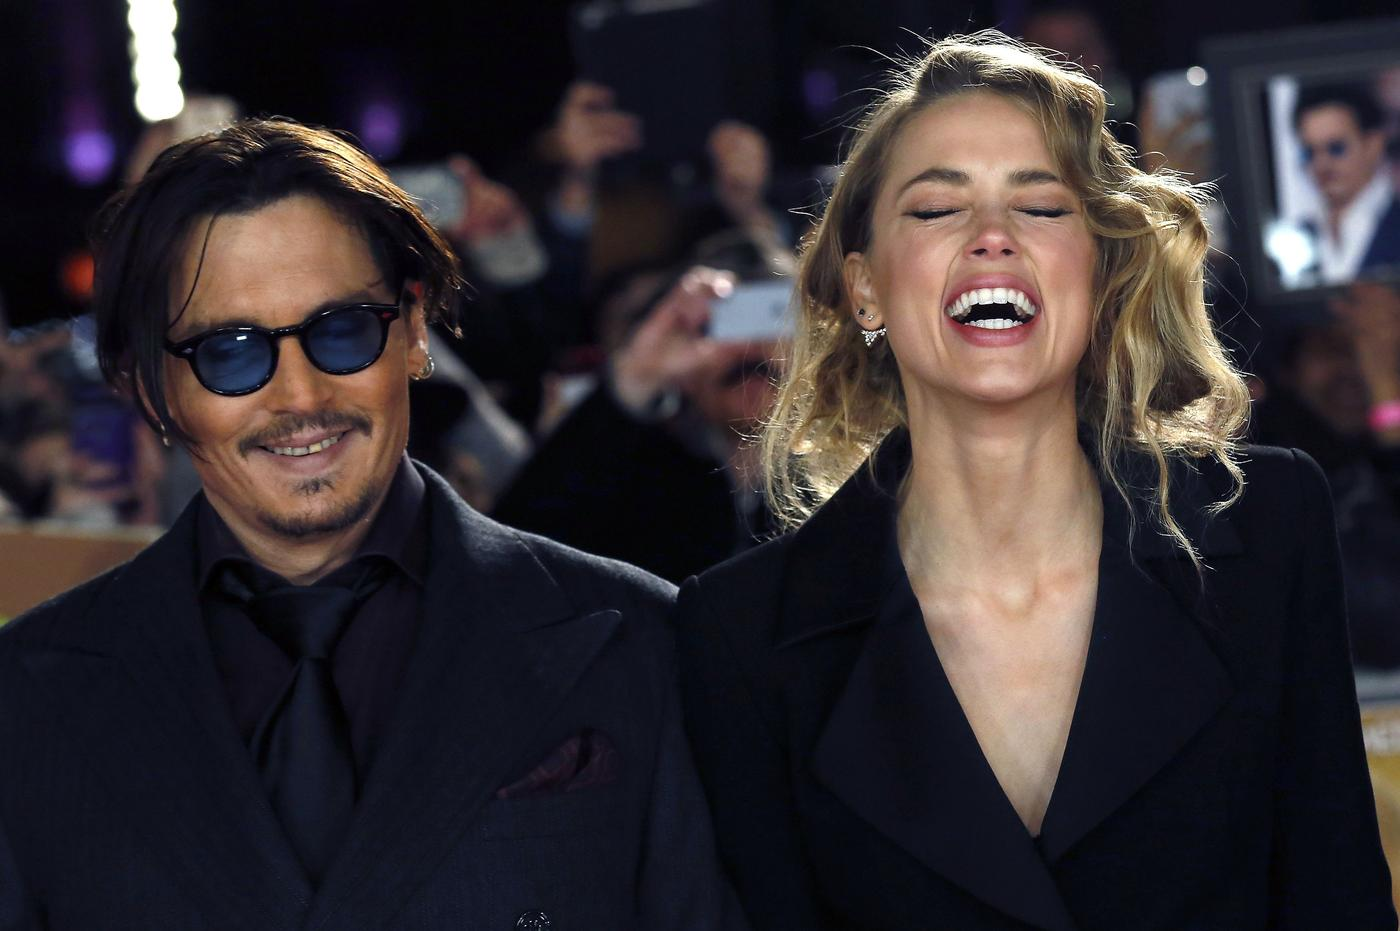 Amber Heard's restraining order against Johnny Depp has been extended for two months